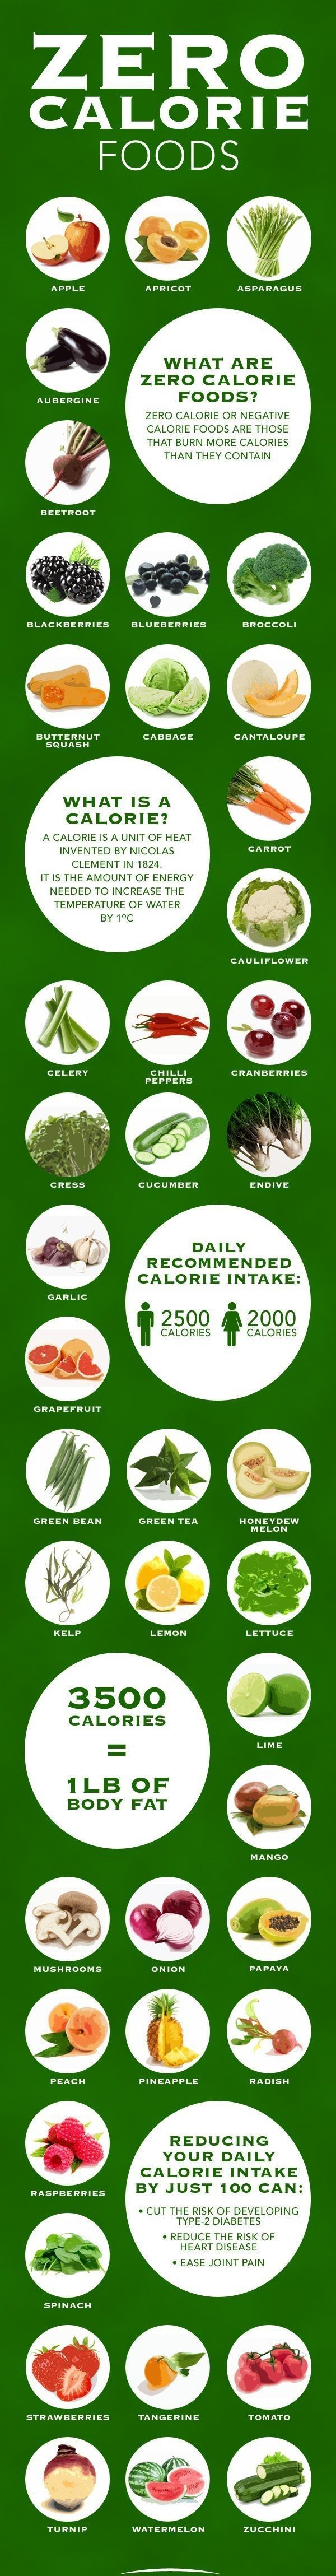 Zero-Calorie Foods!  Want to see how well you are doing with your nutritional habits? Get your FREE No Obligation Wellness Evaluation TODAY! www.WellnessScore.co.uk